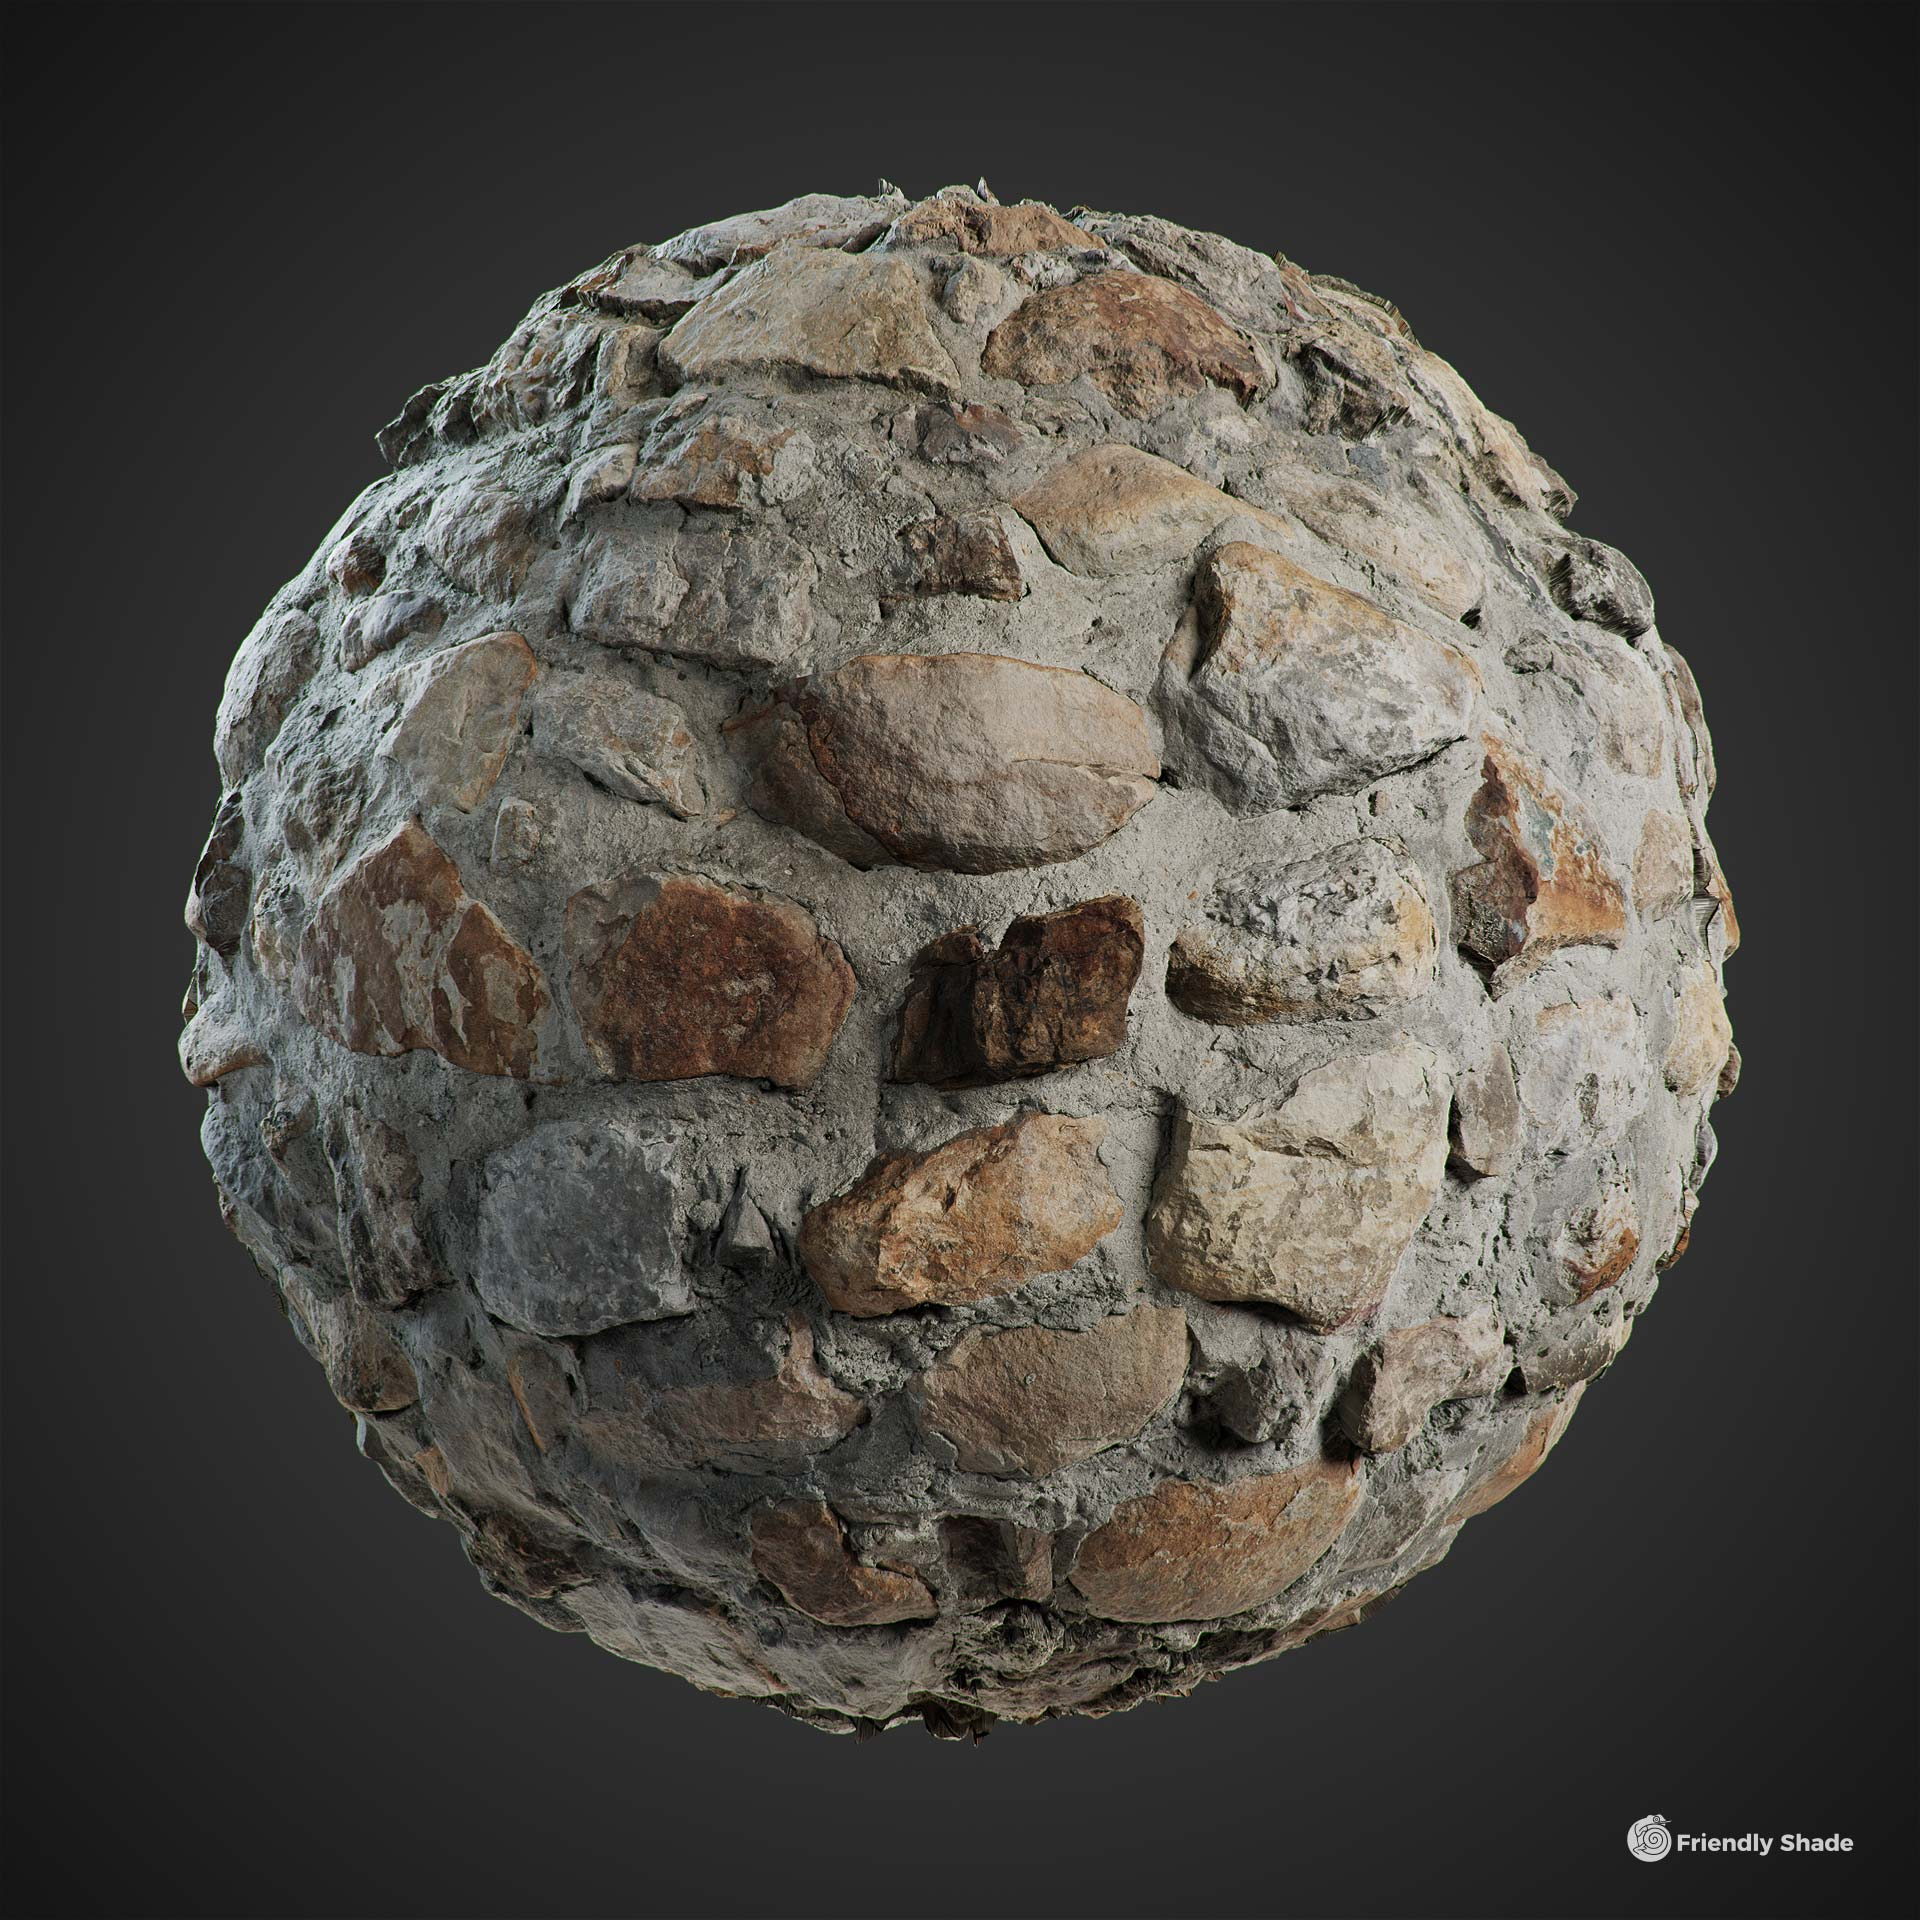 The image shows a sphere with our Cobblestone Wall texture